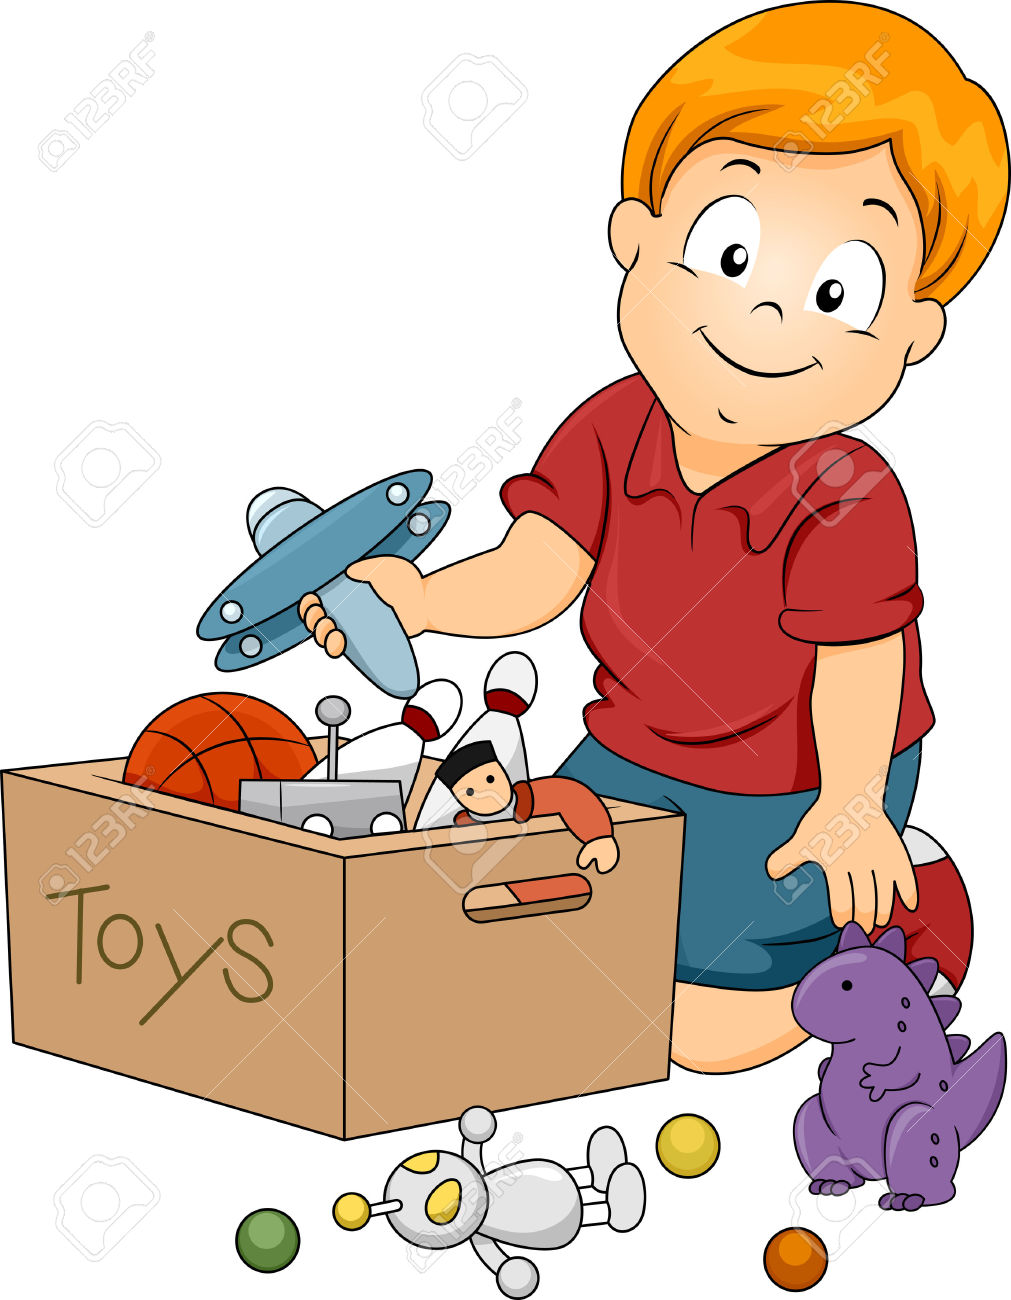 Toys clipart #9